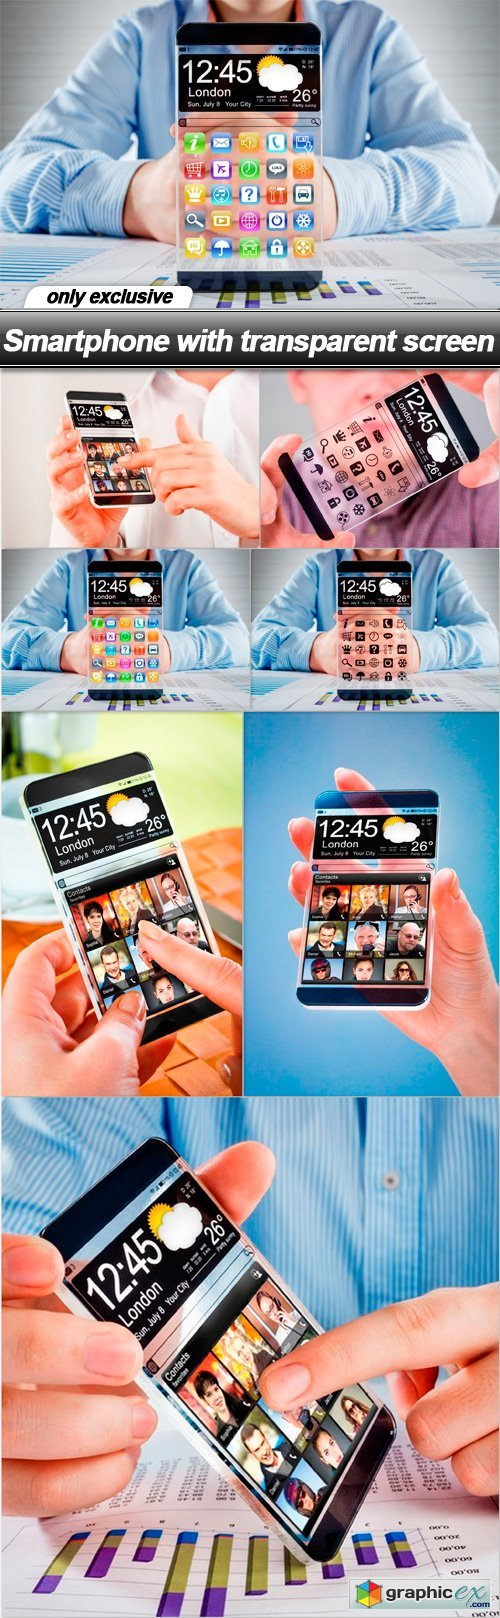 Smartphone with transparent screen - 7 UHQ JPEG